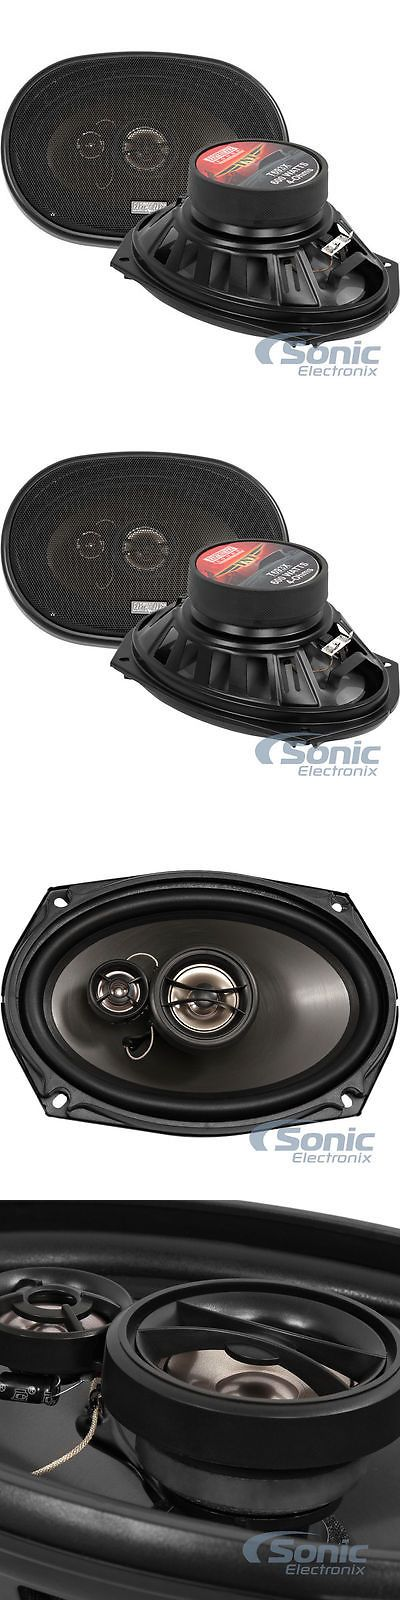 Car Speakers and Speaker Systems: Earthquake Sound T693x 200W Rms 6 X 9 3-Way Coaxial Car Stereo Speakers -> BUY IT NOW ONLY: $59.99 on eBay!